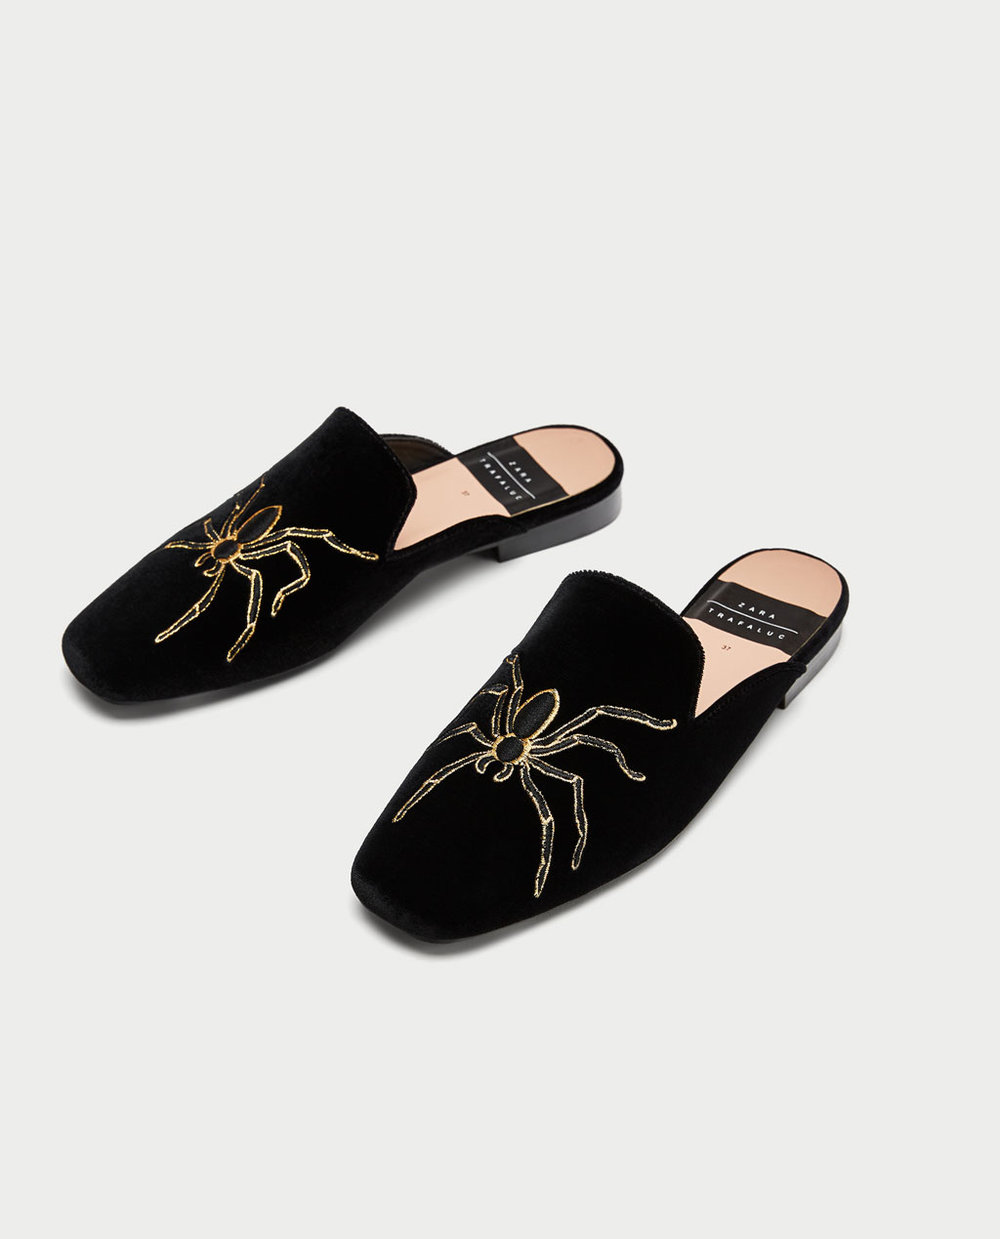 Zara Mule Loafers Style Apotheca